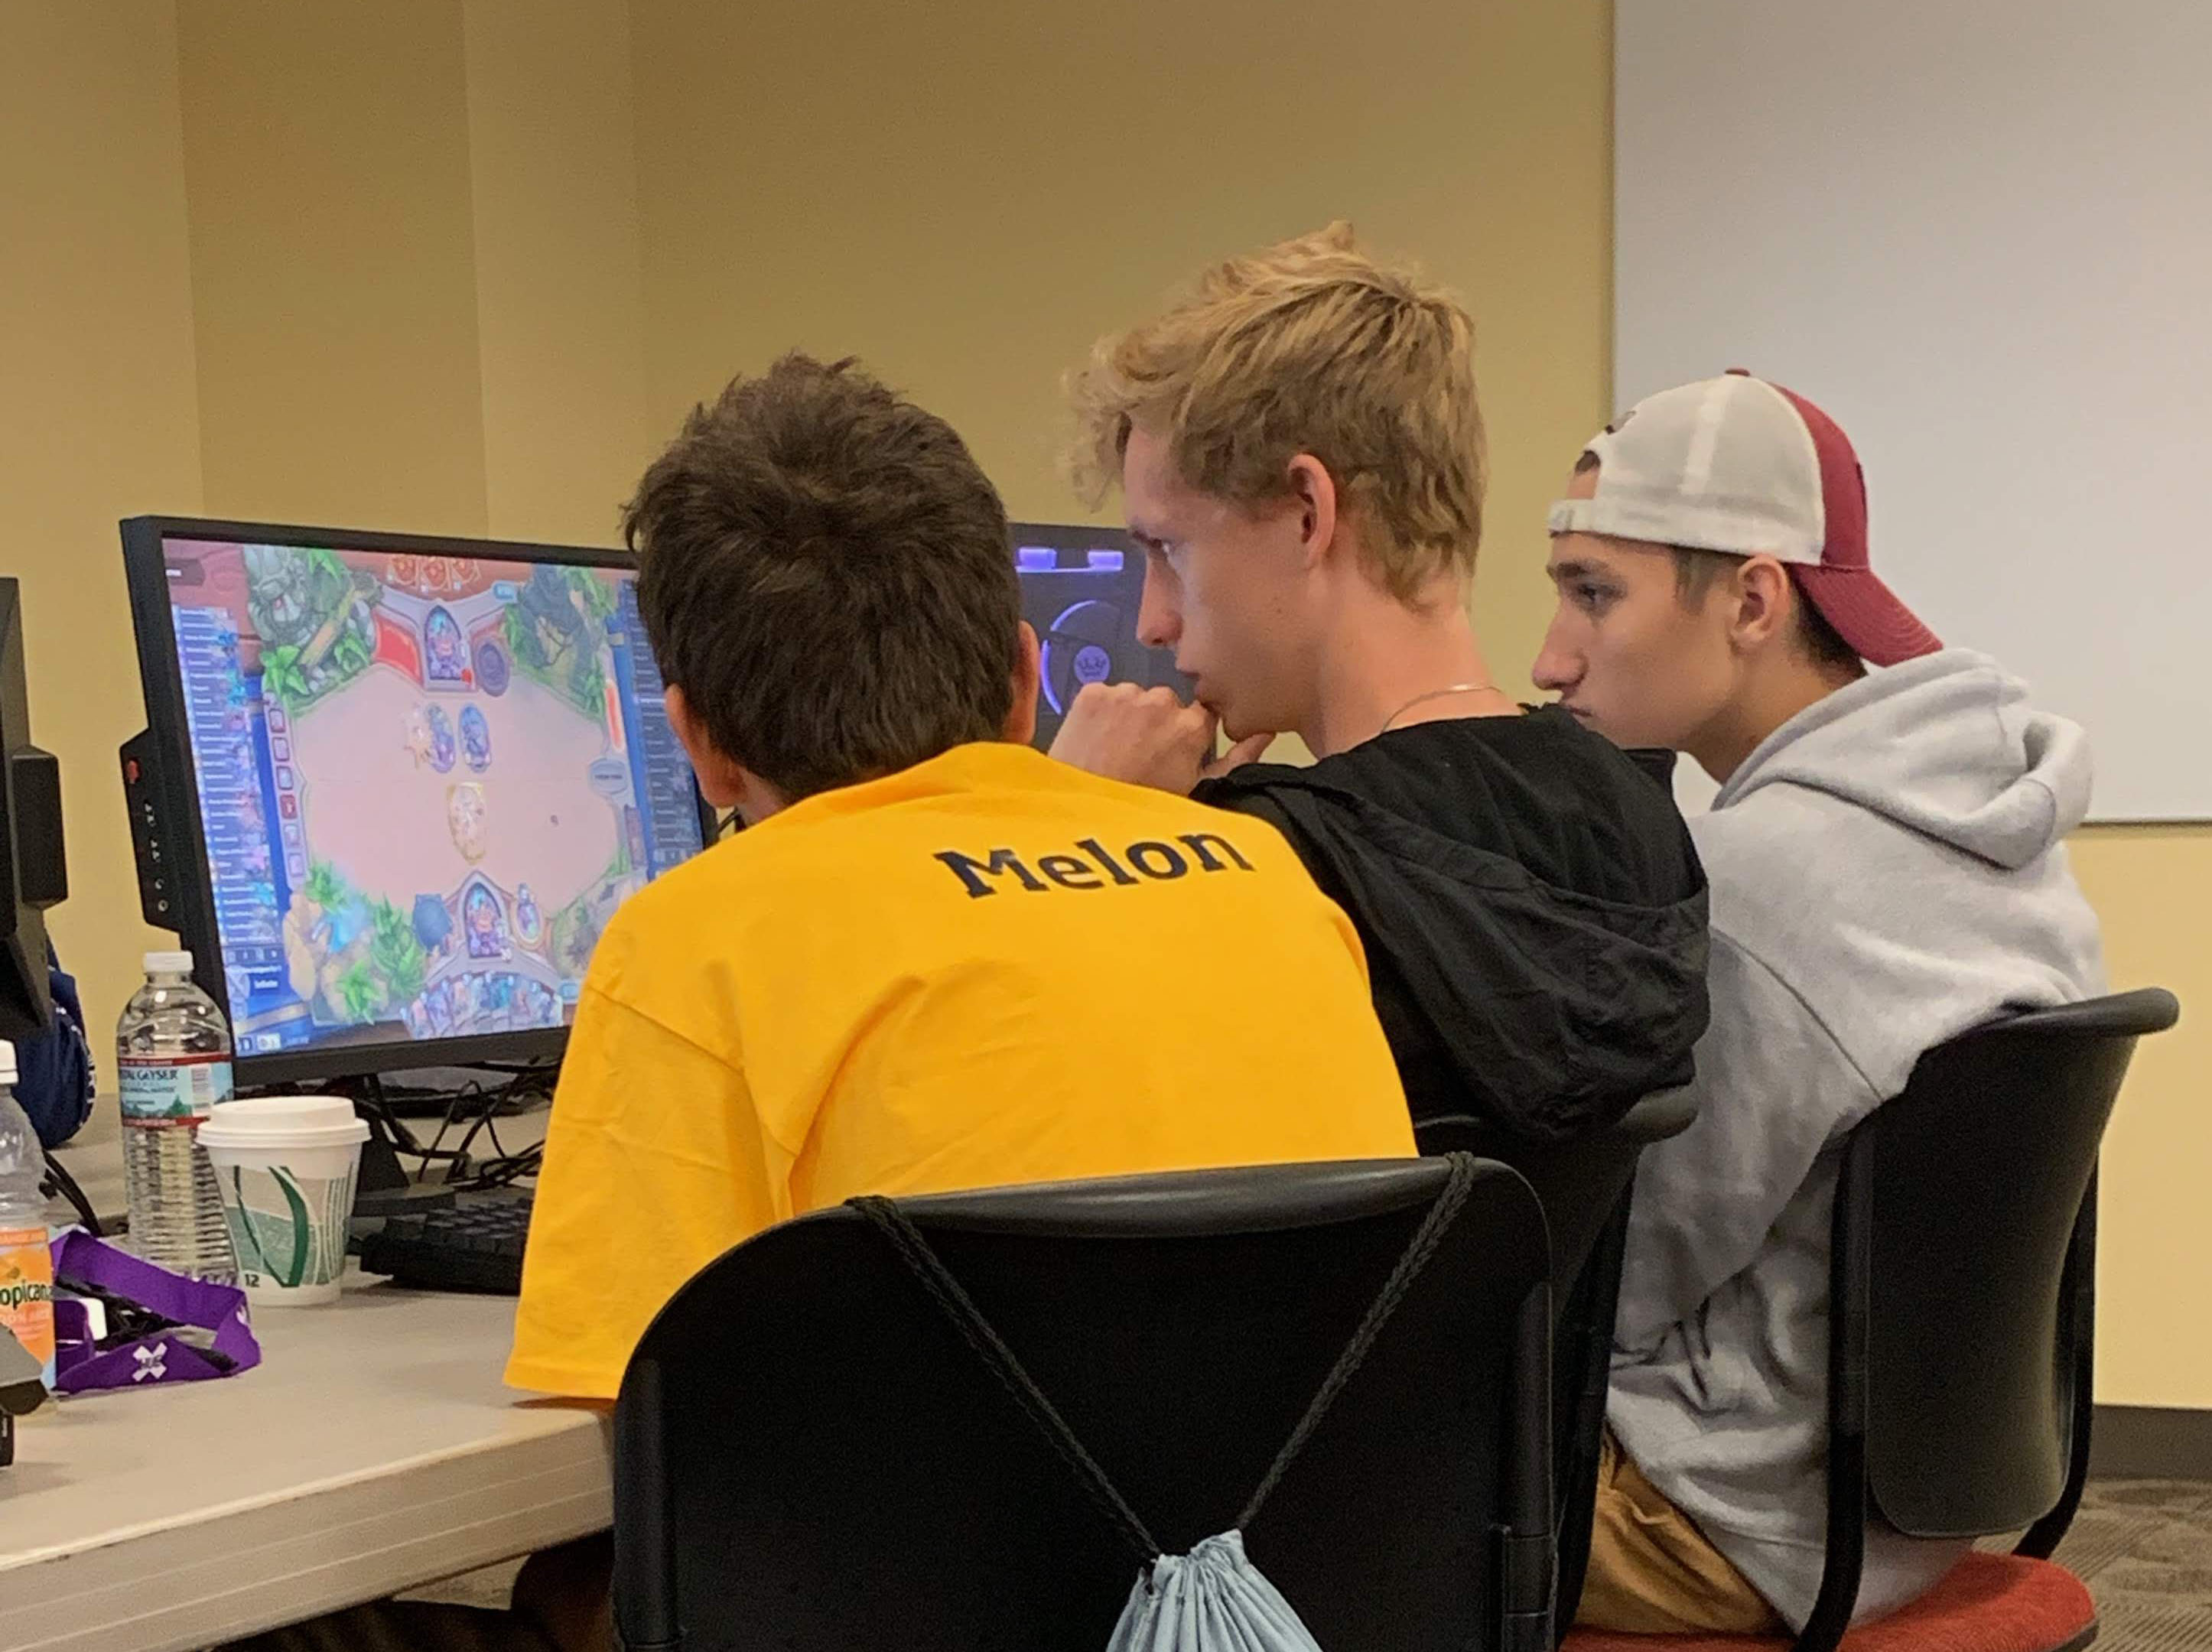 Early in the competition, the Kent State Hearthstone team members contemplate their next move against universities from around the country.